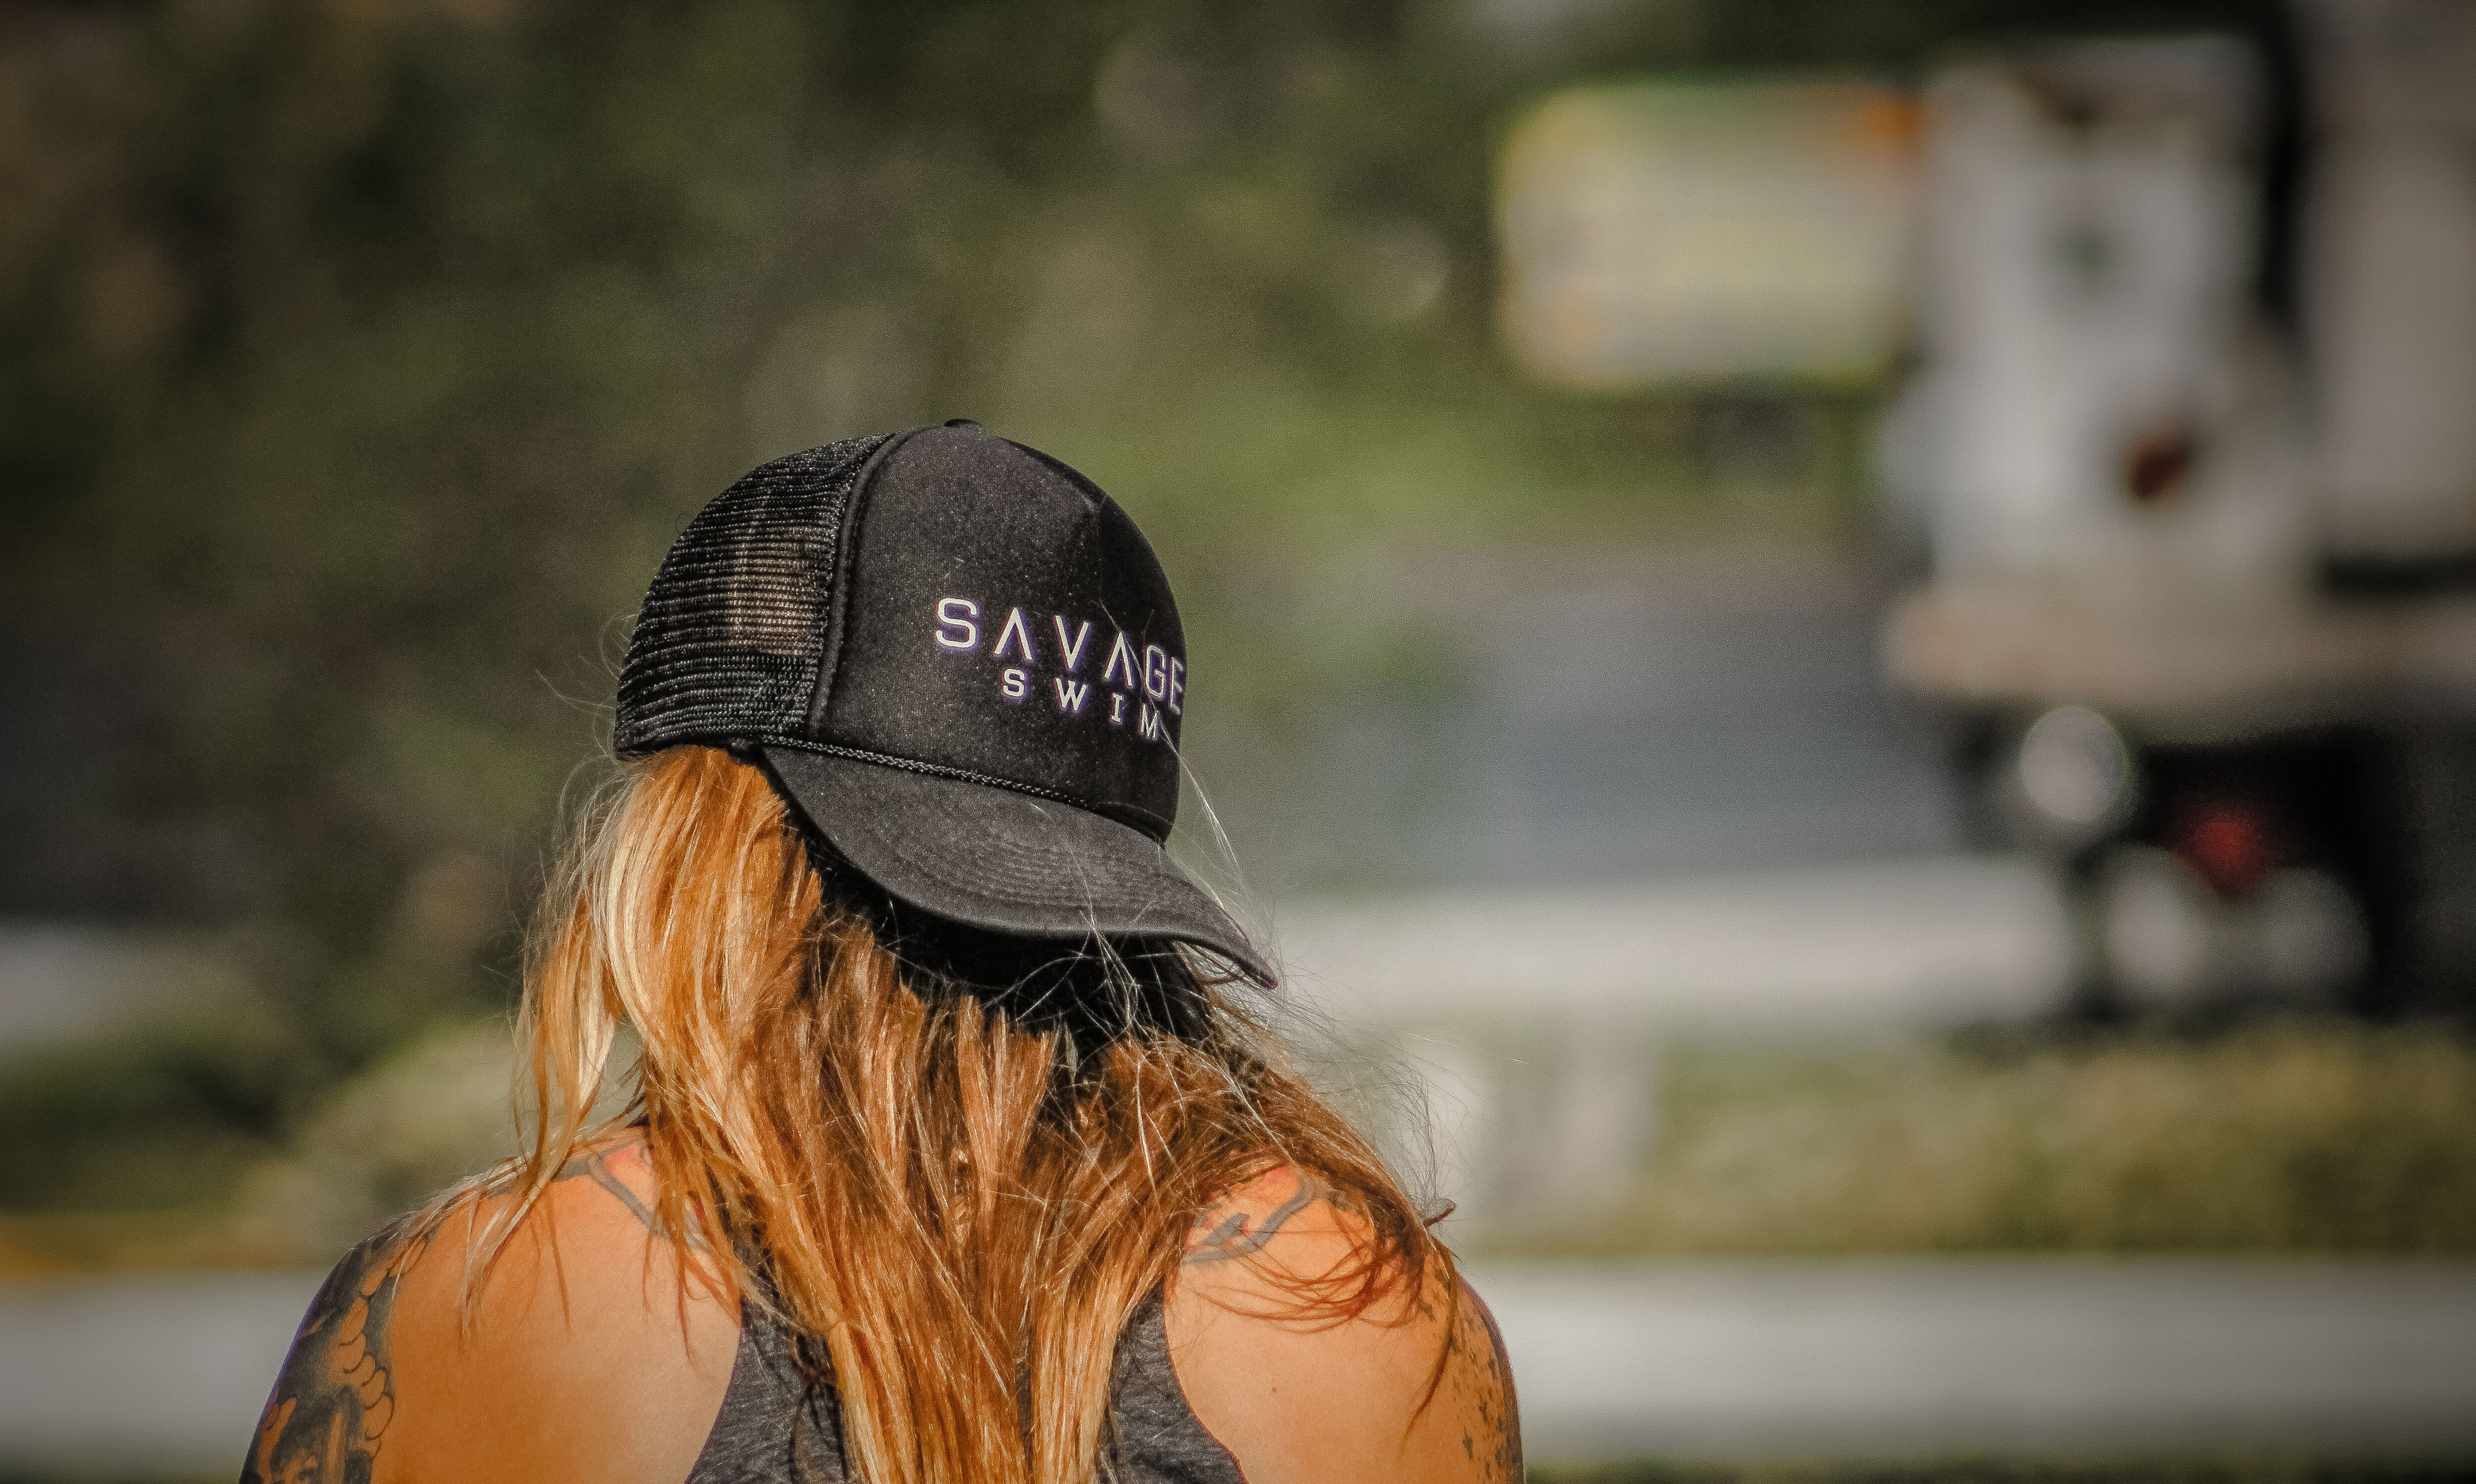 Women's black savage baseball cap photo